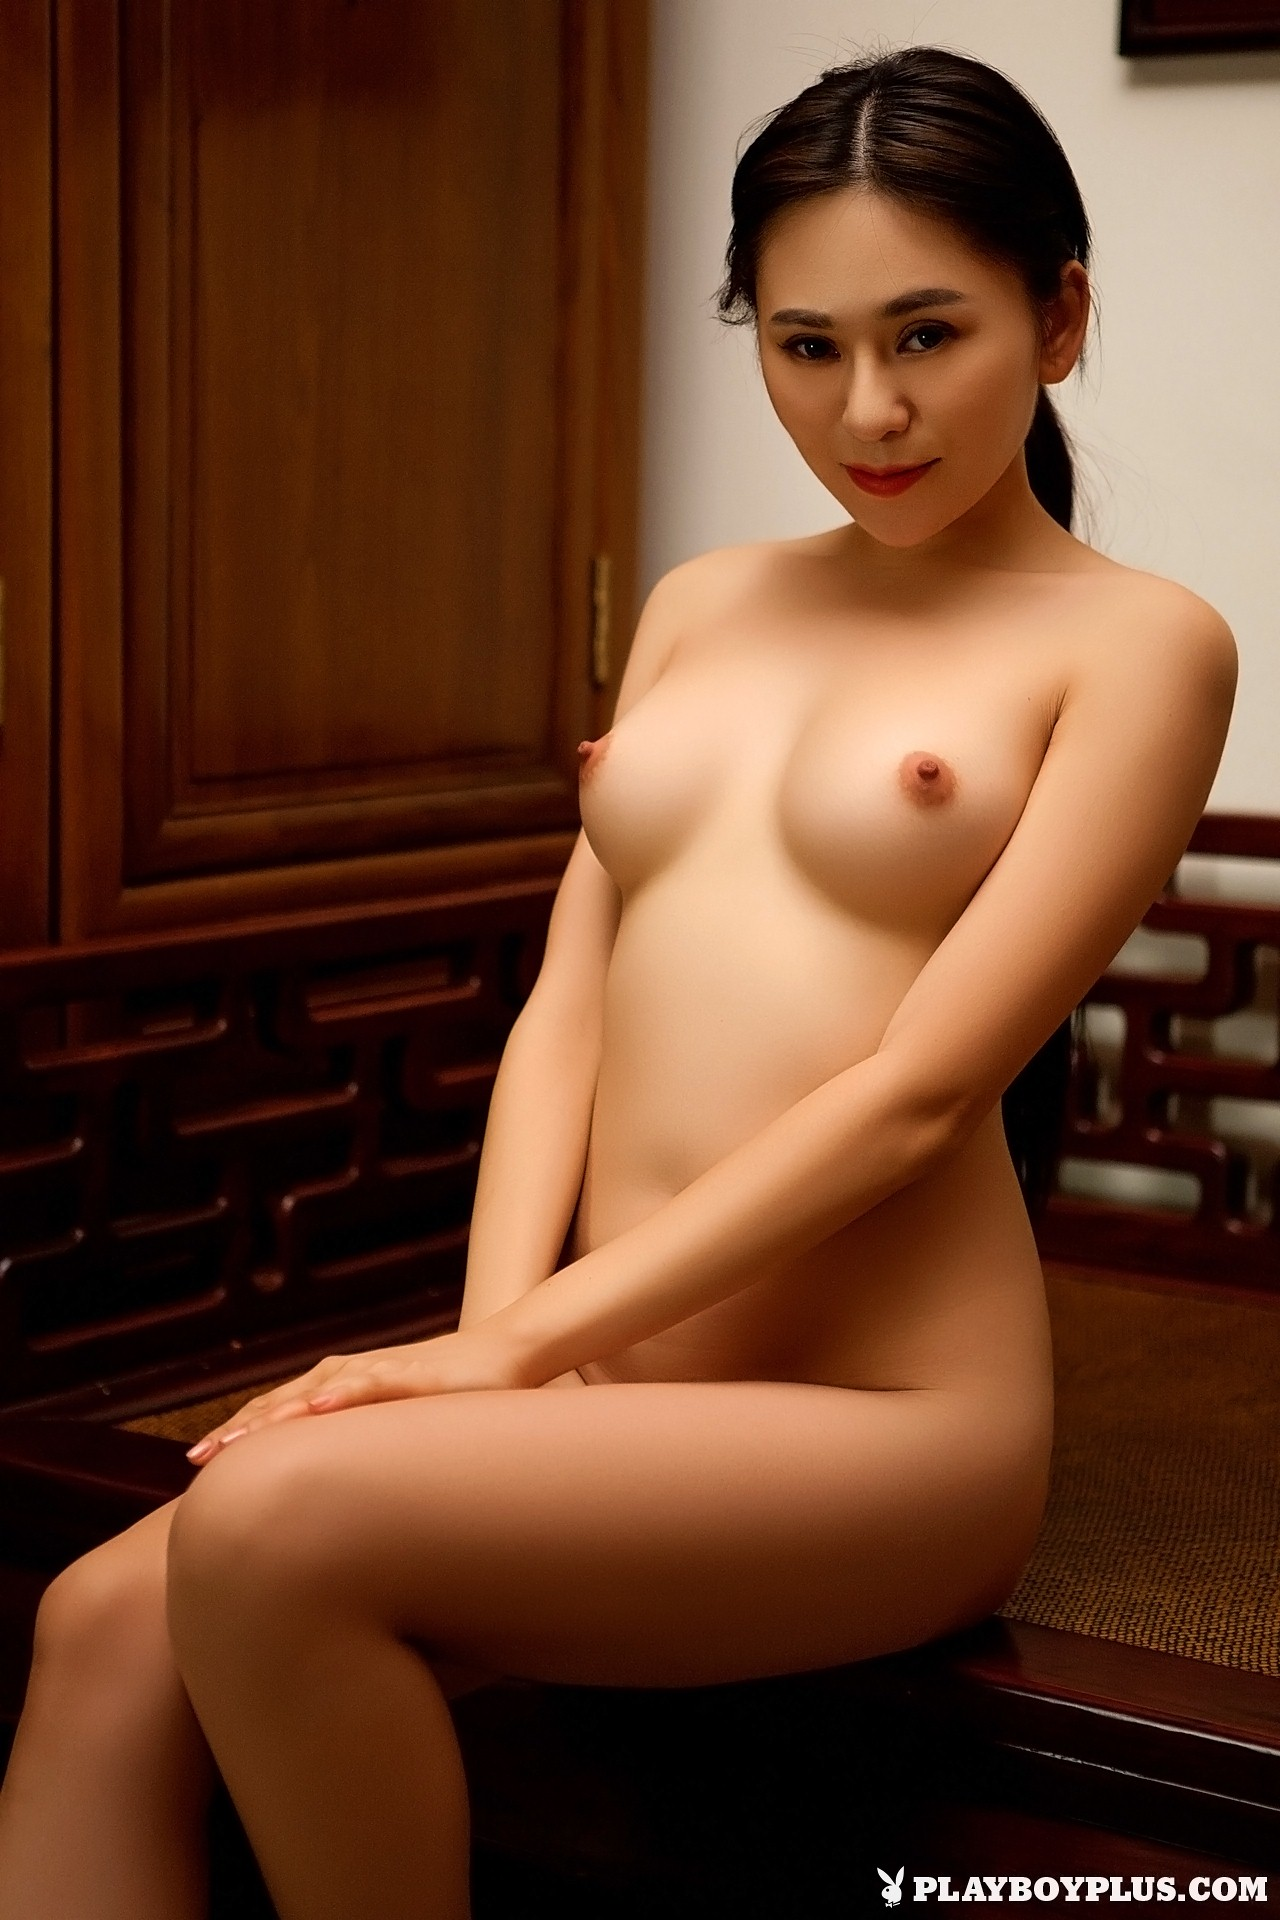 Naked nude girl in india